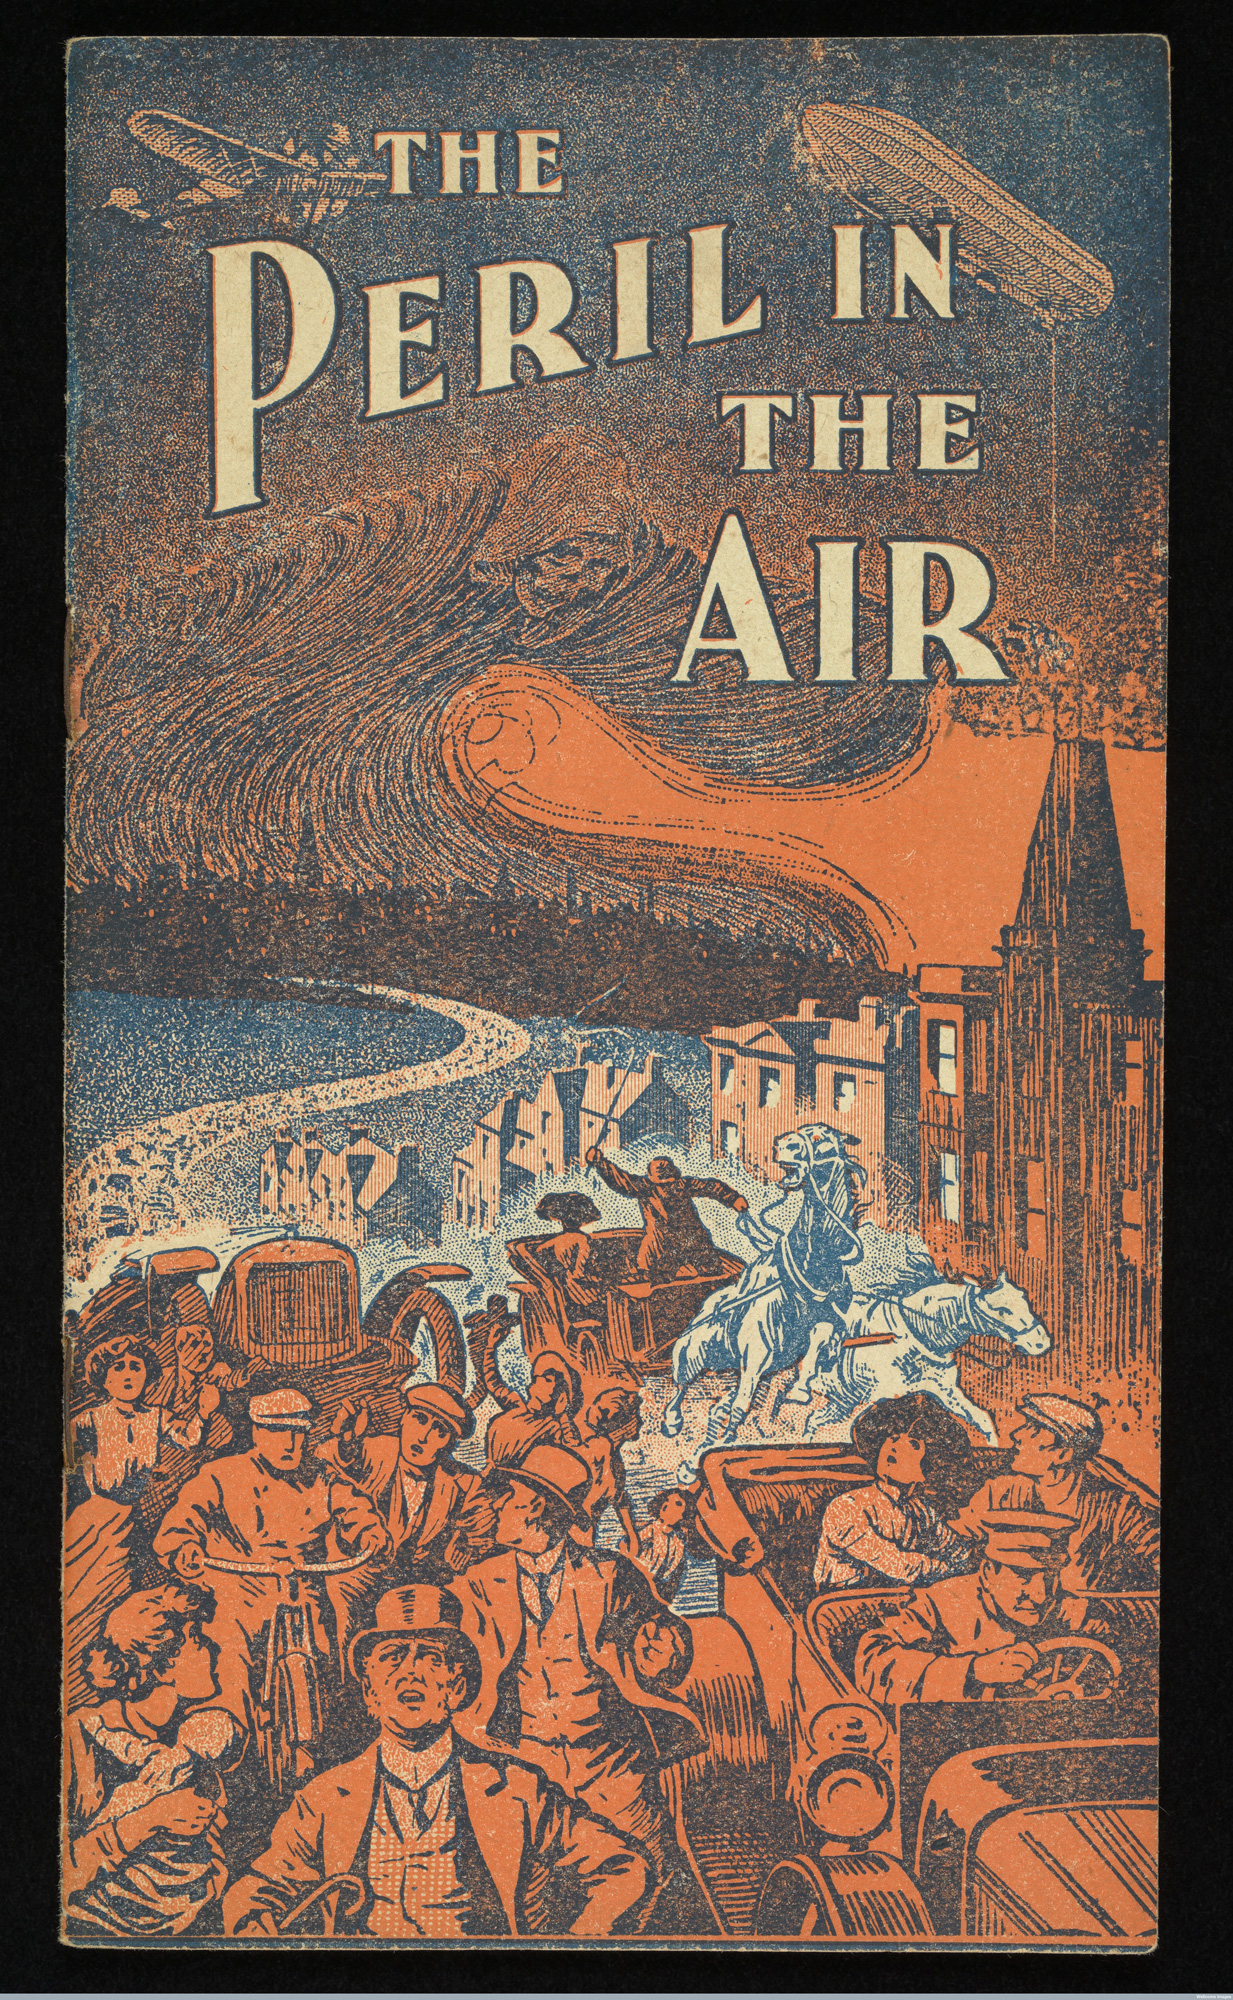 Figure 1: An advert for cough and cold tablets from 1913 captures some of the early connotations of airborne terror: cities are sites of modern ills from factory pollution to lung diseases. Credit: Wellcome Library, London, available under Creative Commons Attribution only licence CC BY 4.0